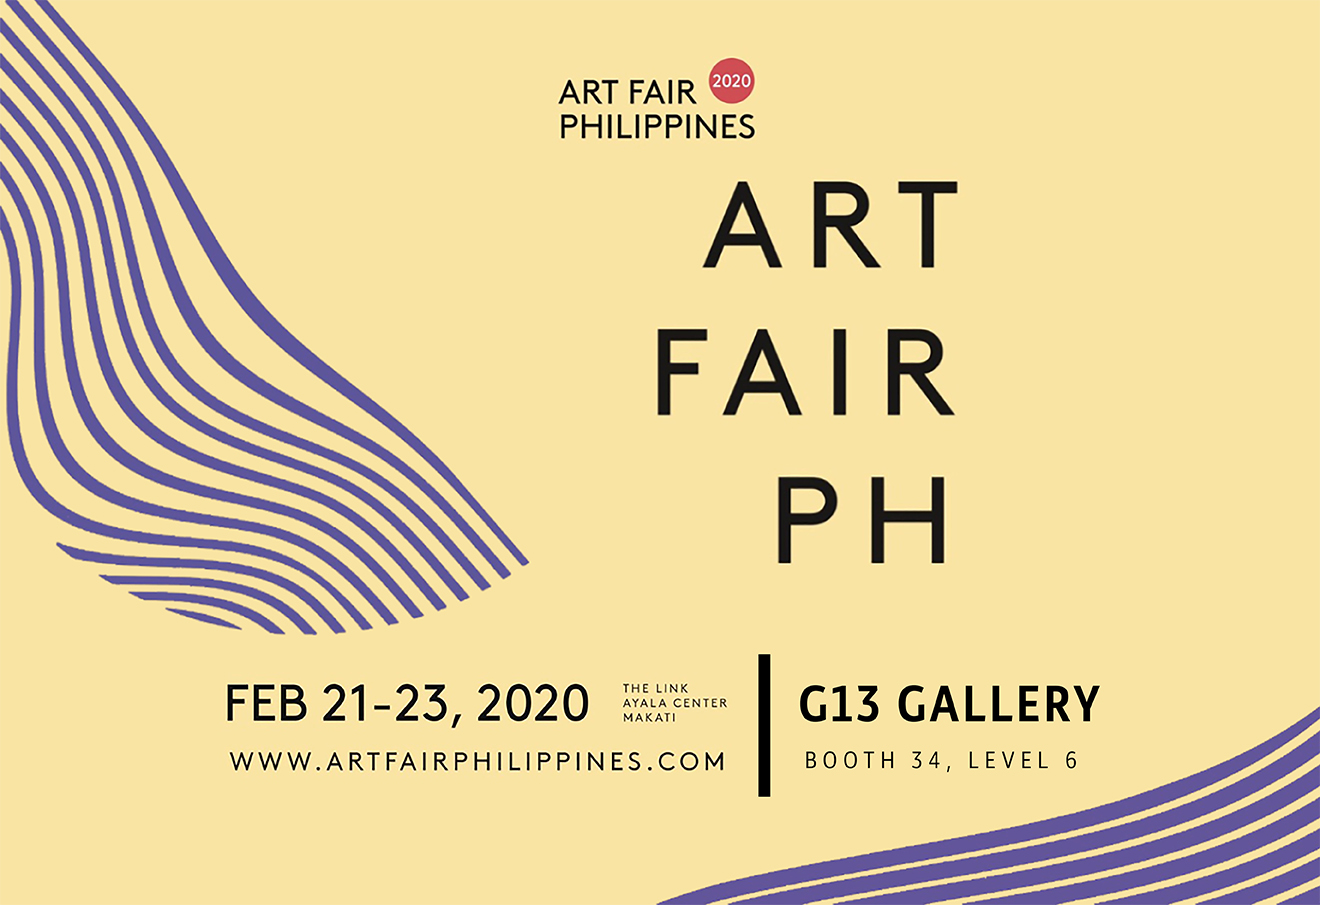 Art Fair Philippines 2020